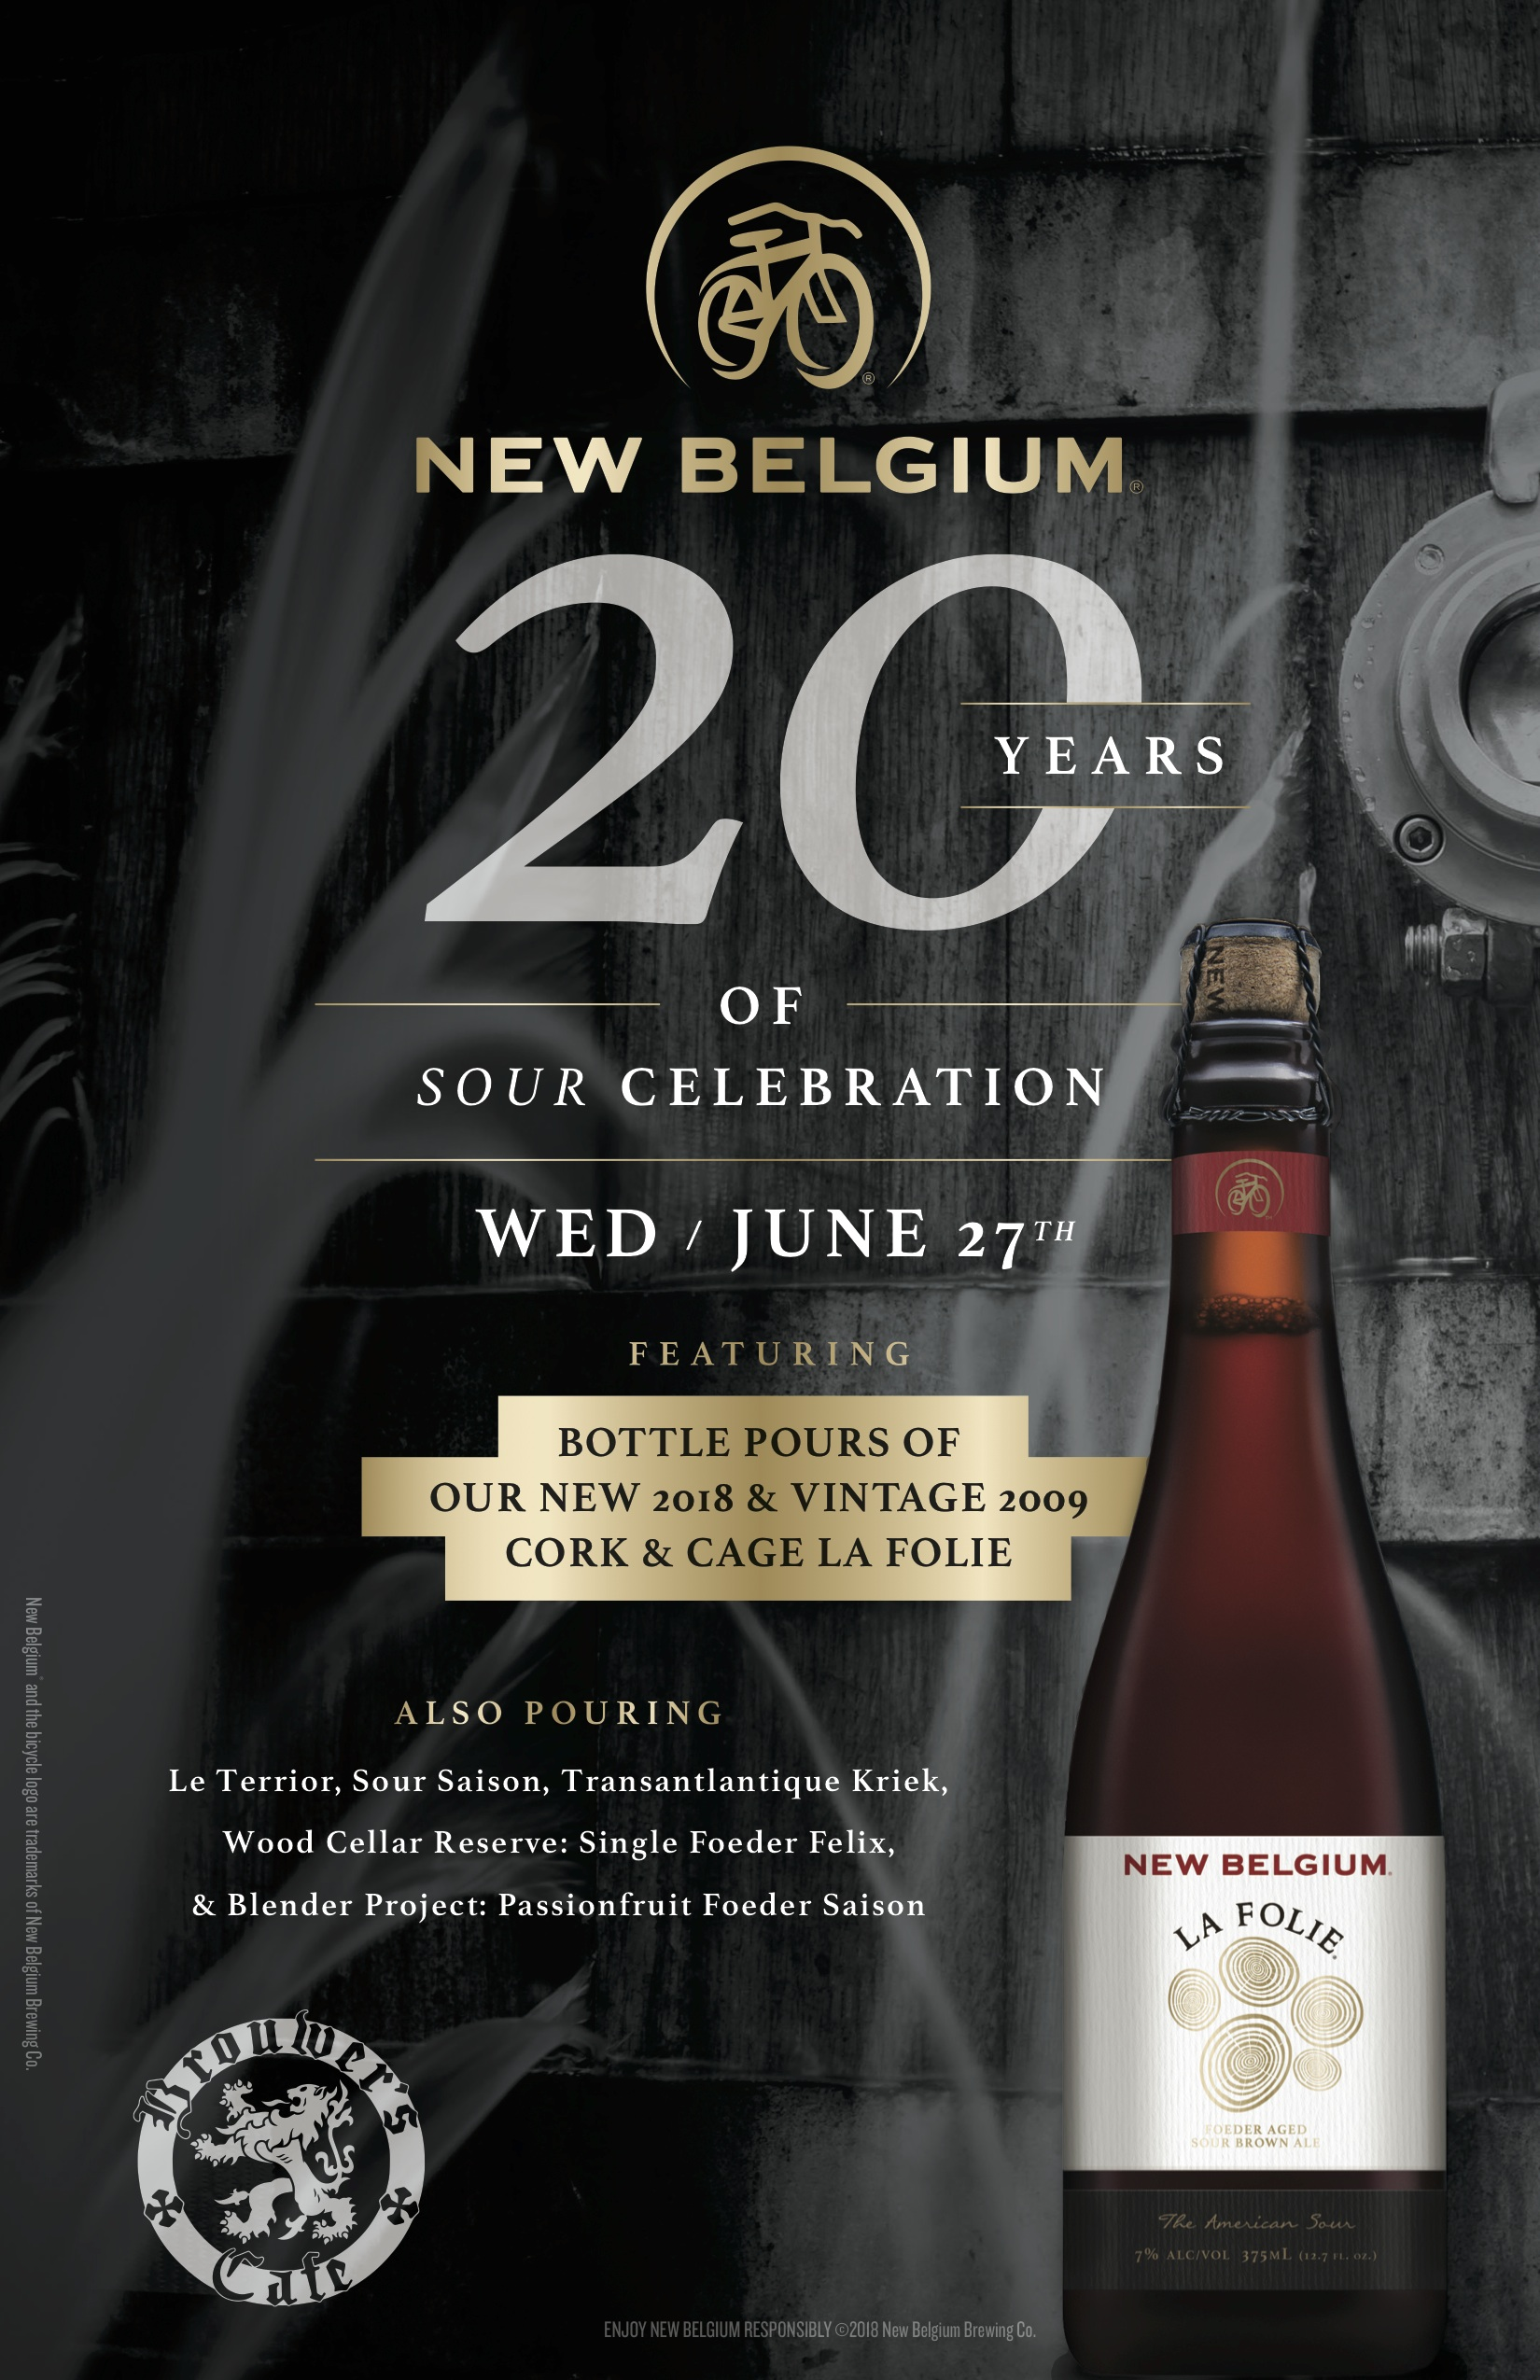 Wednesday, June 27th @ 5pm, Celebrate New Belgium 20 Years of Sour